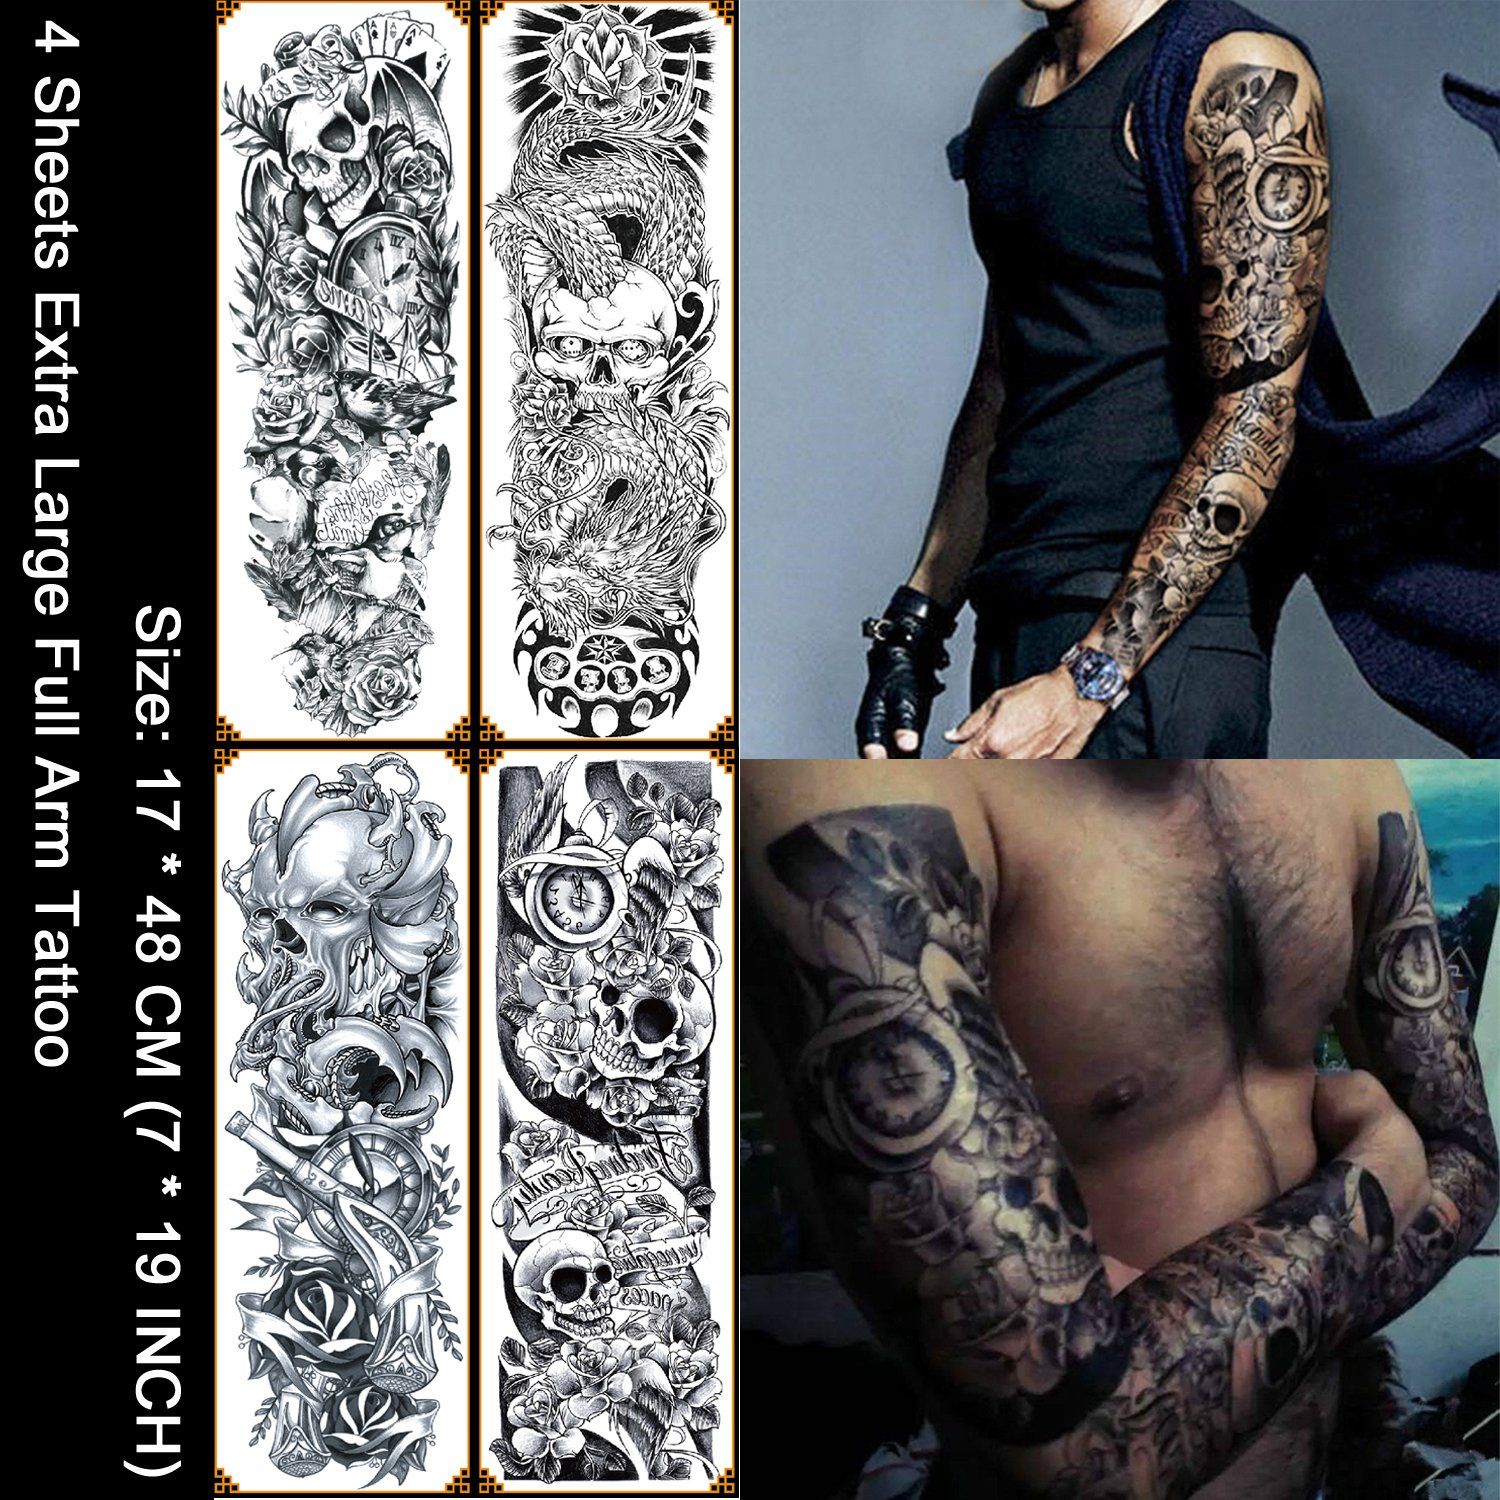 Kotbs 4 Sheets Large Waterproof Full Arm Tattoo Sticker Skull Rose Fake Tattoos Sleeve Temporary Tattoo Body Art For Men Women